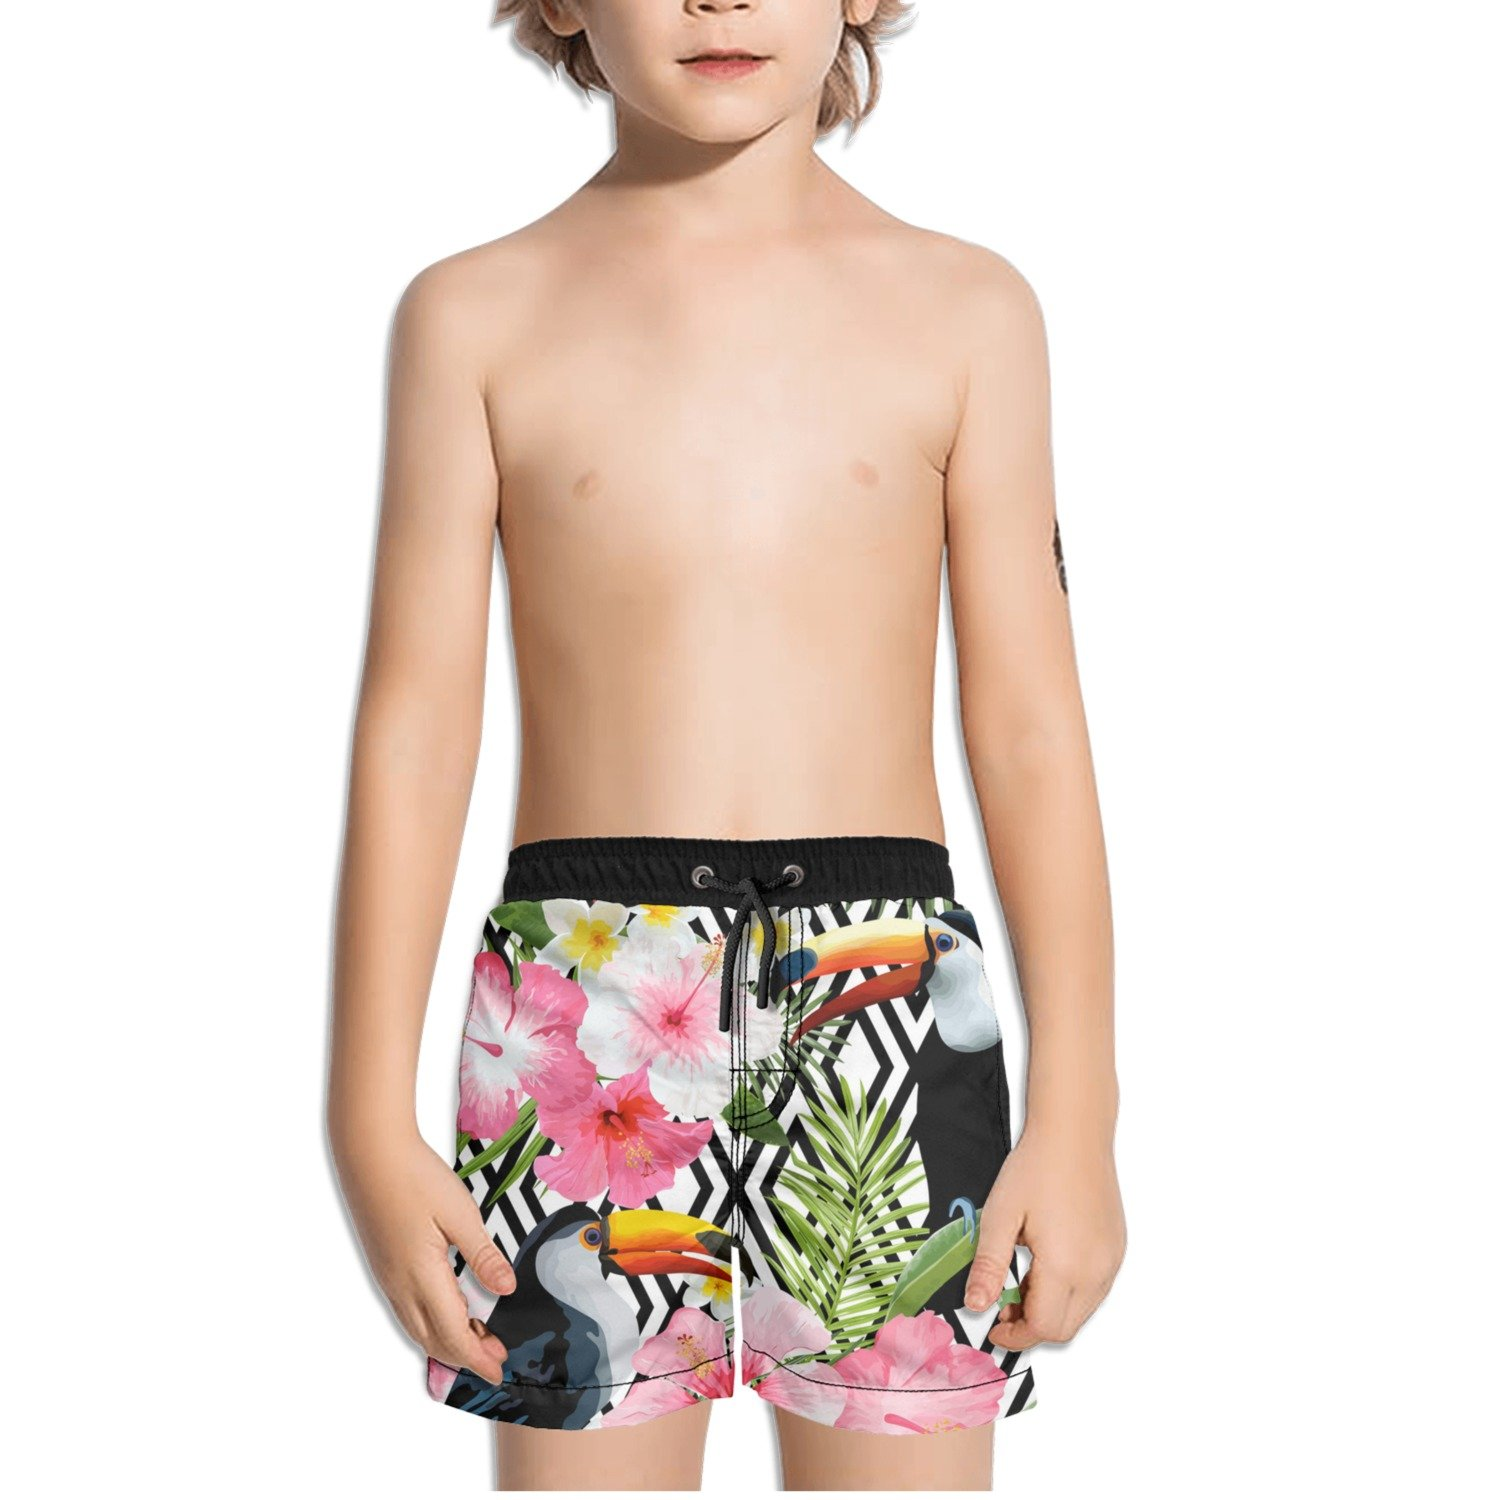 Ouxioaz Boys' Swim Trunk Tropical Birds Flowers Beach Board Shorts